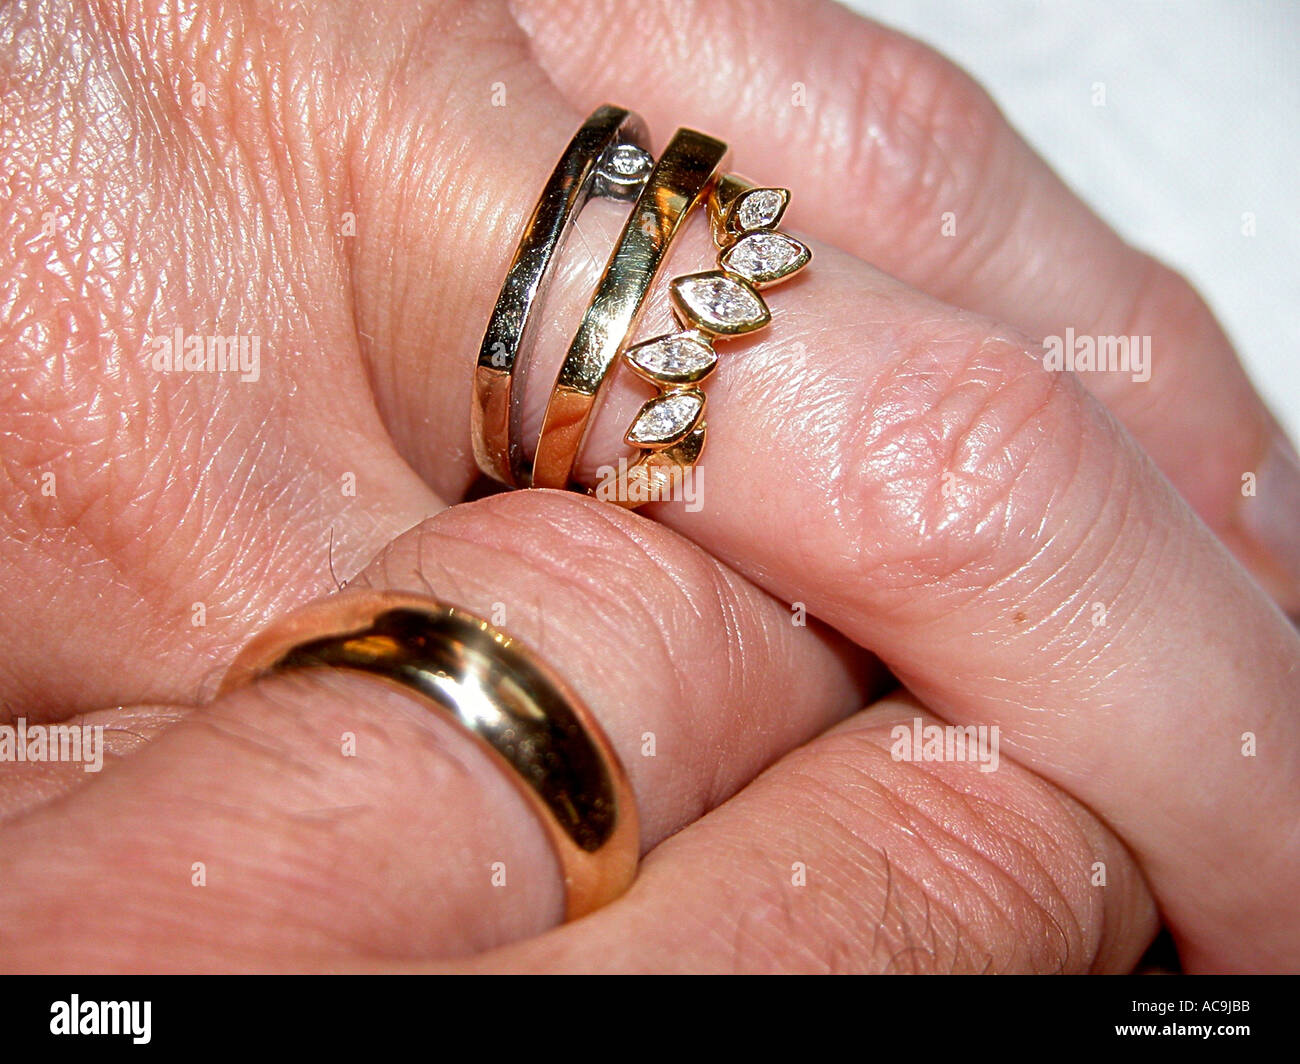 Female and male hands with rings Stock Photo: 4271802 - Alamy